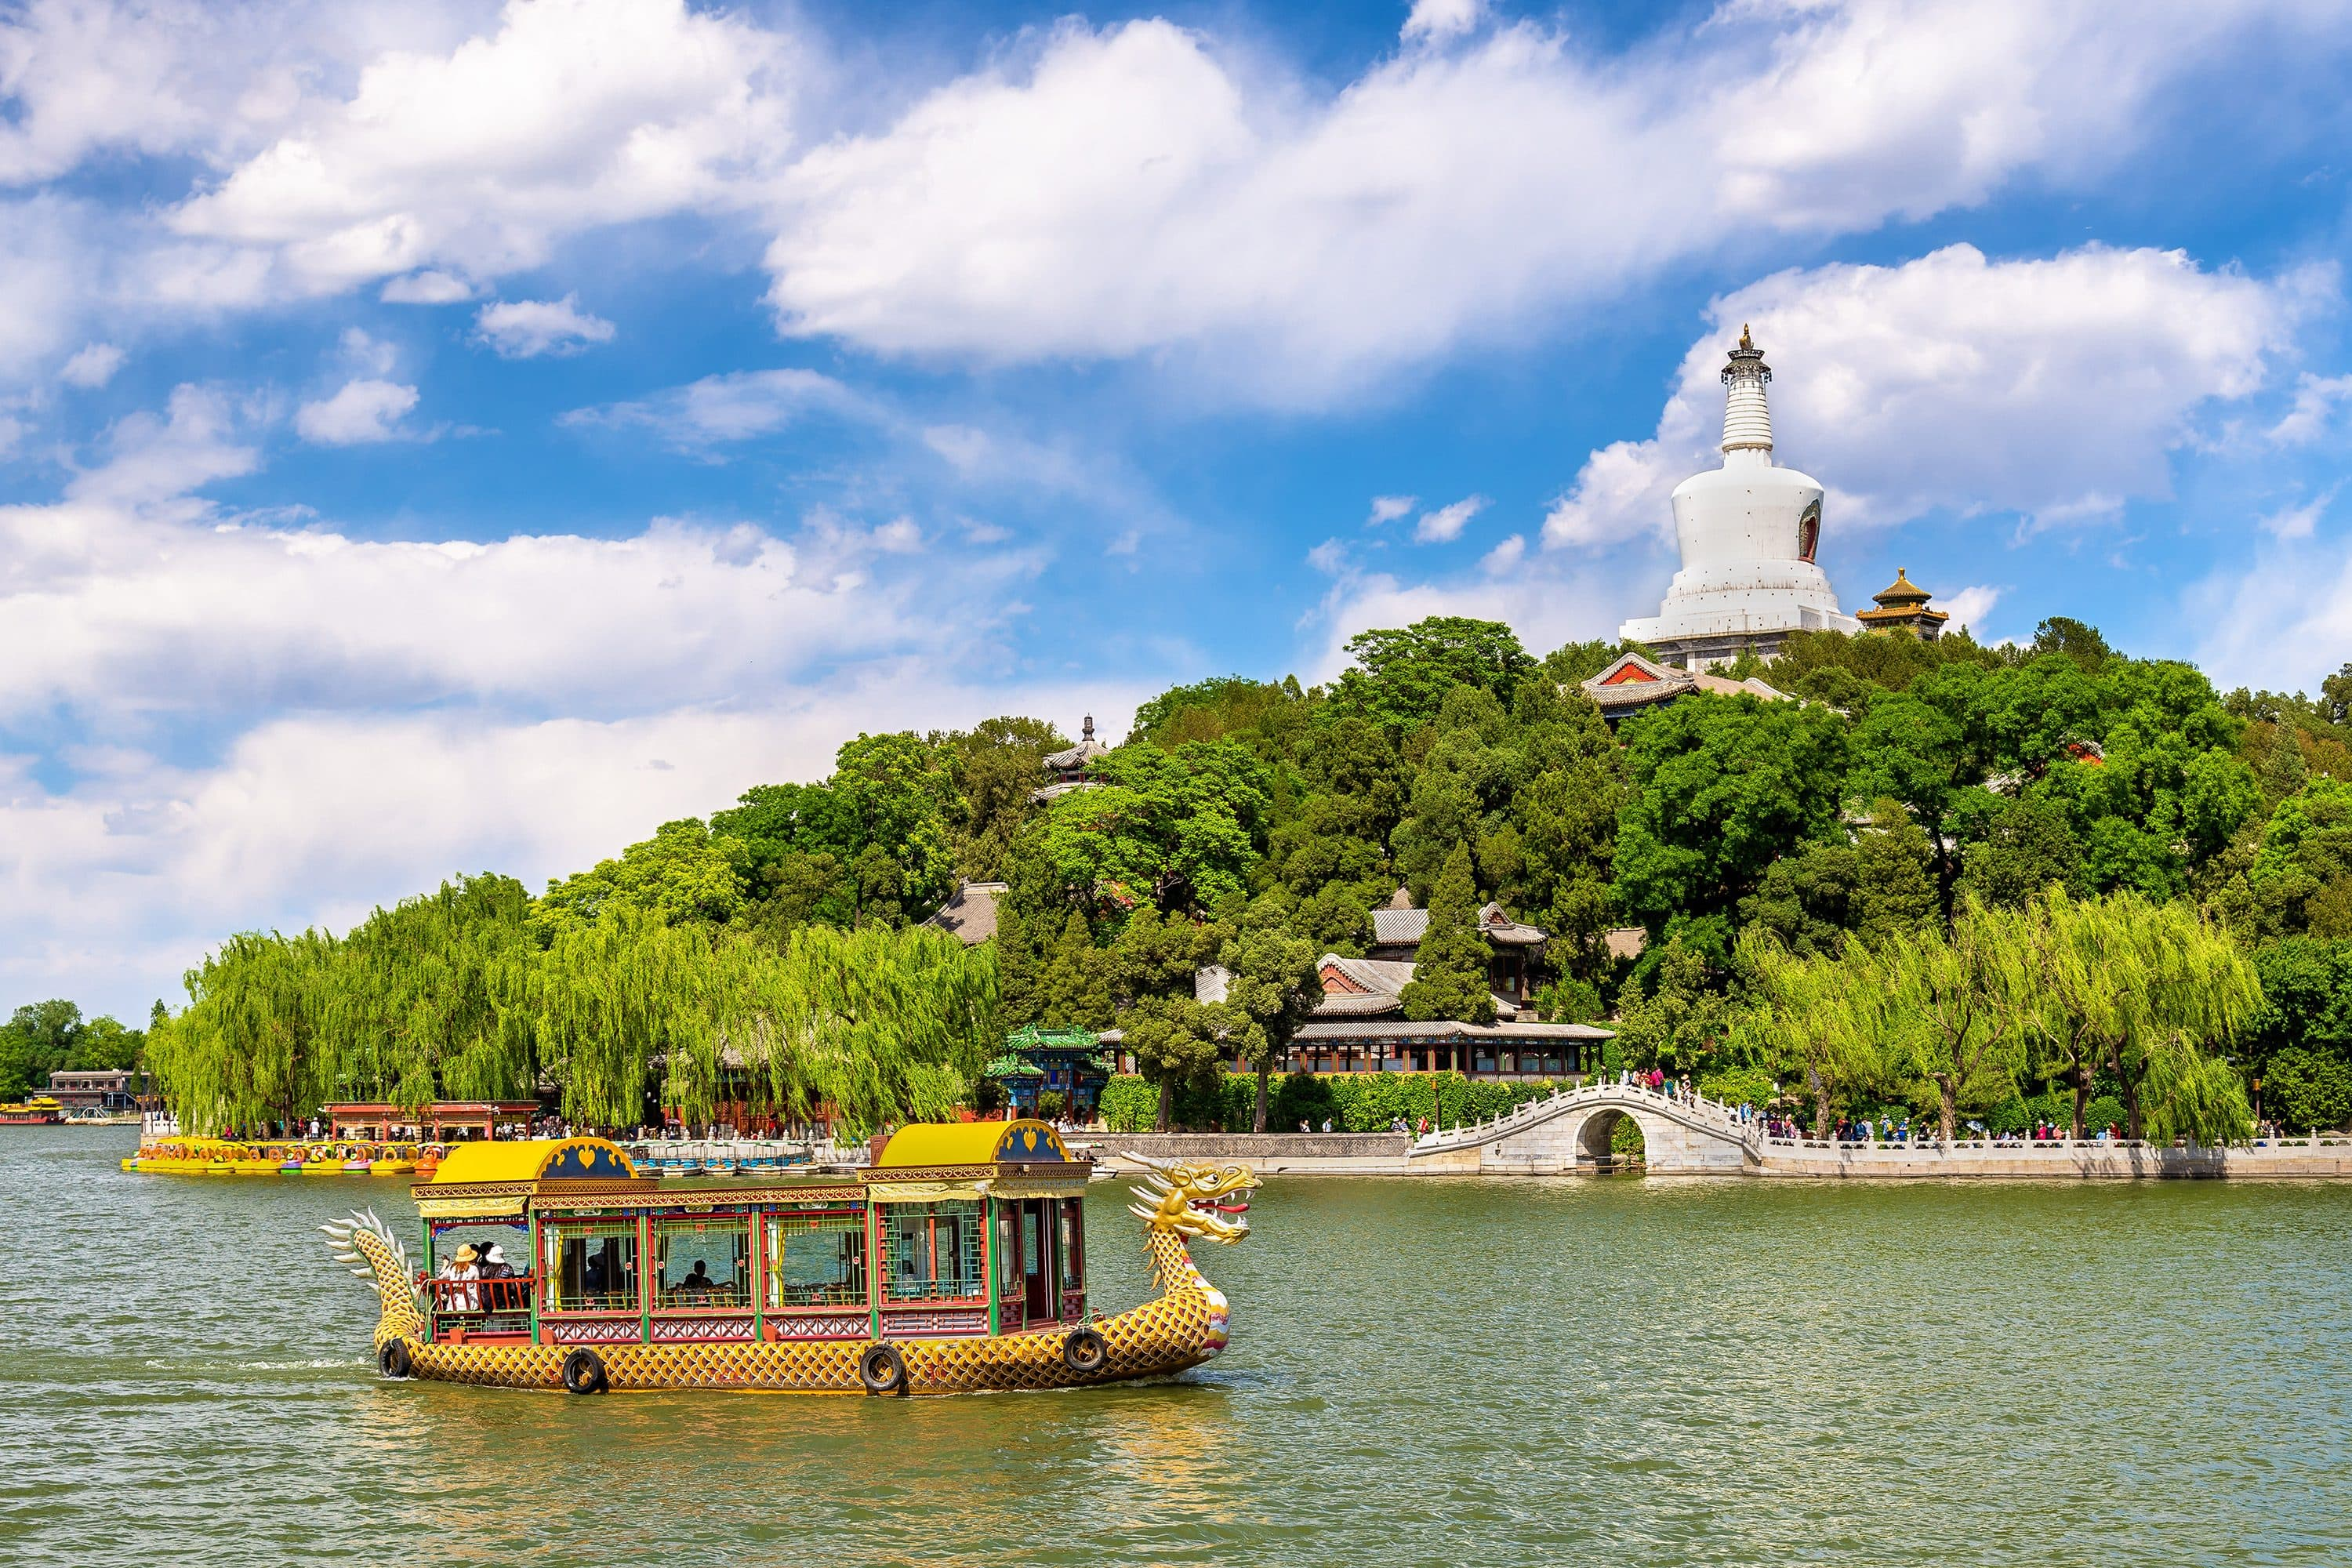 Boat on the water at the Beihai Park, Beijing